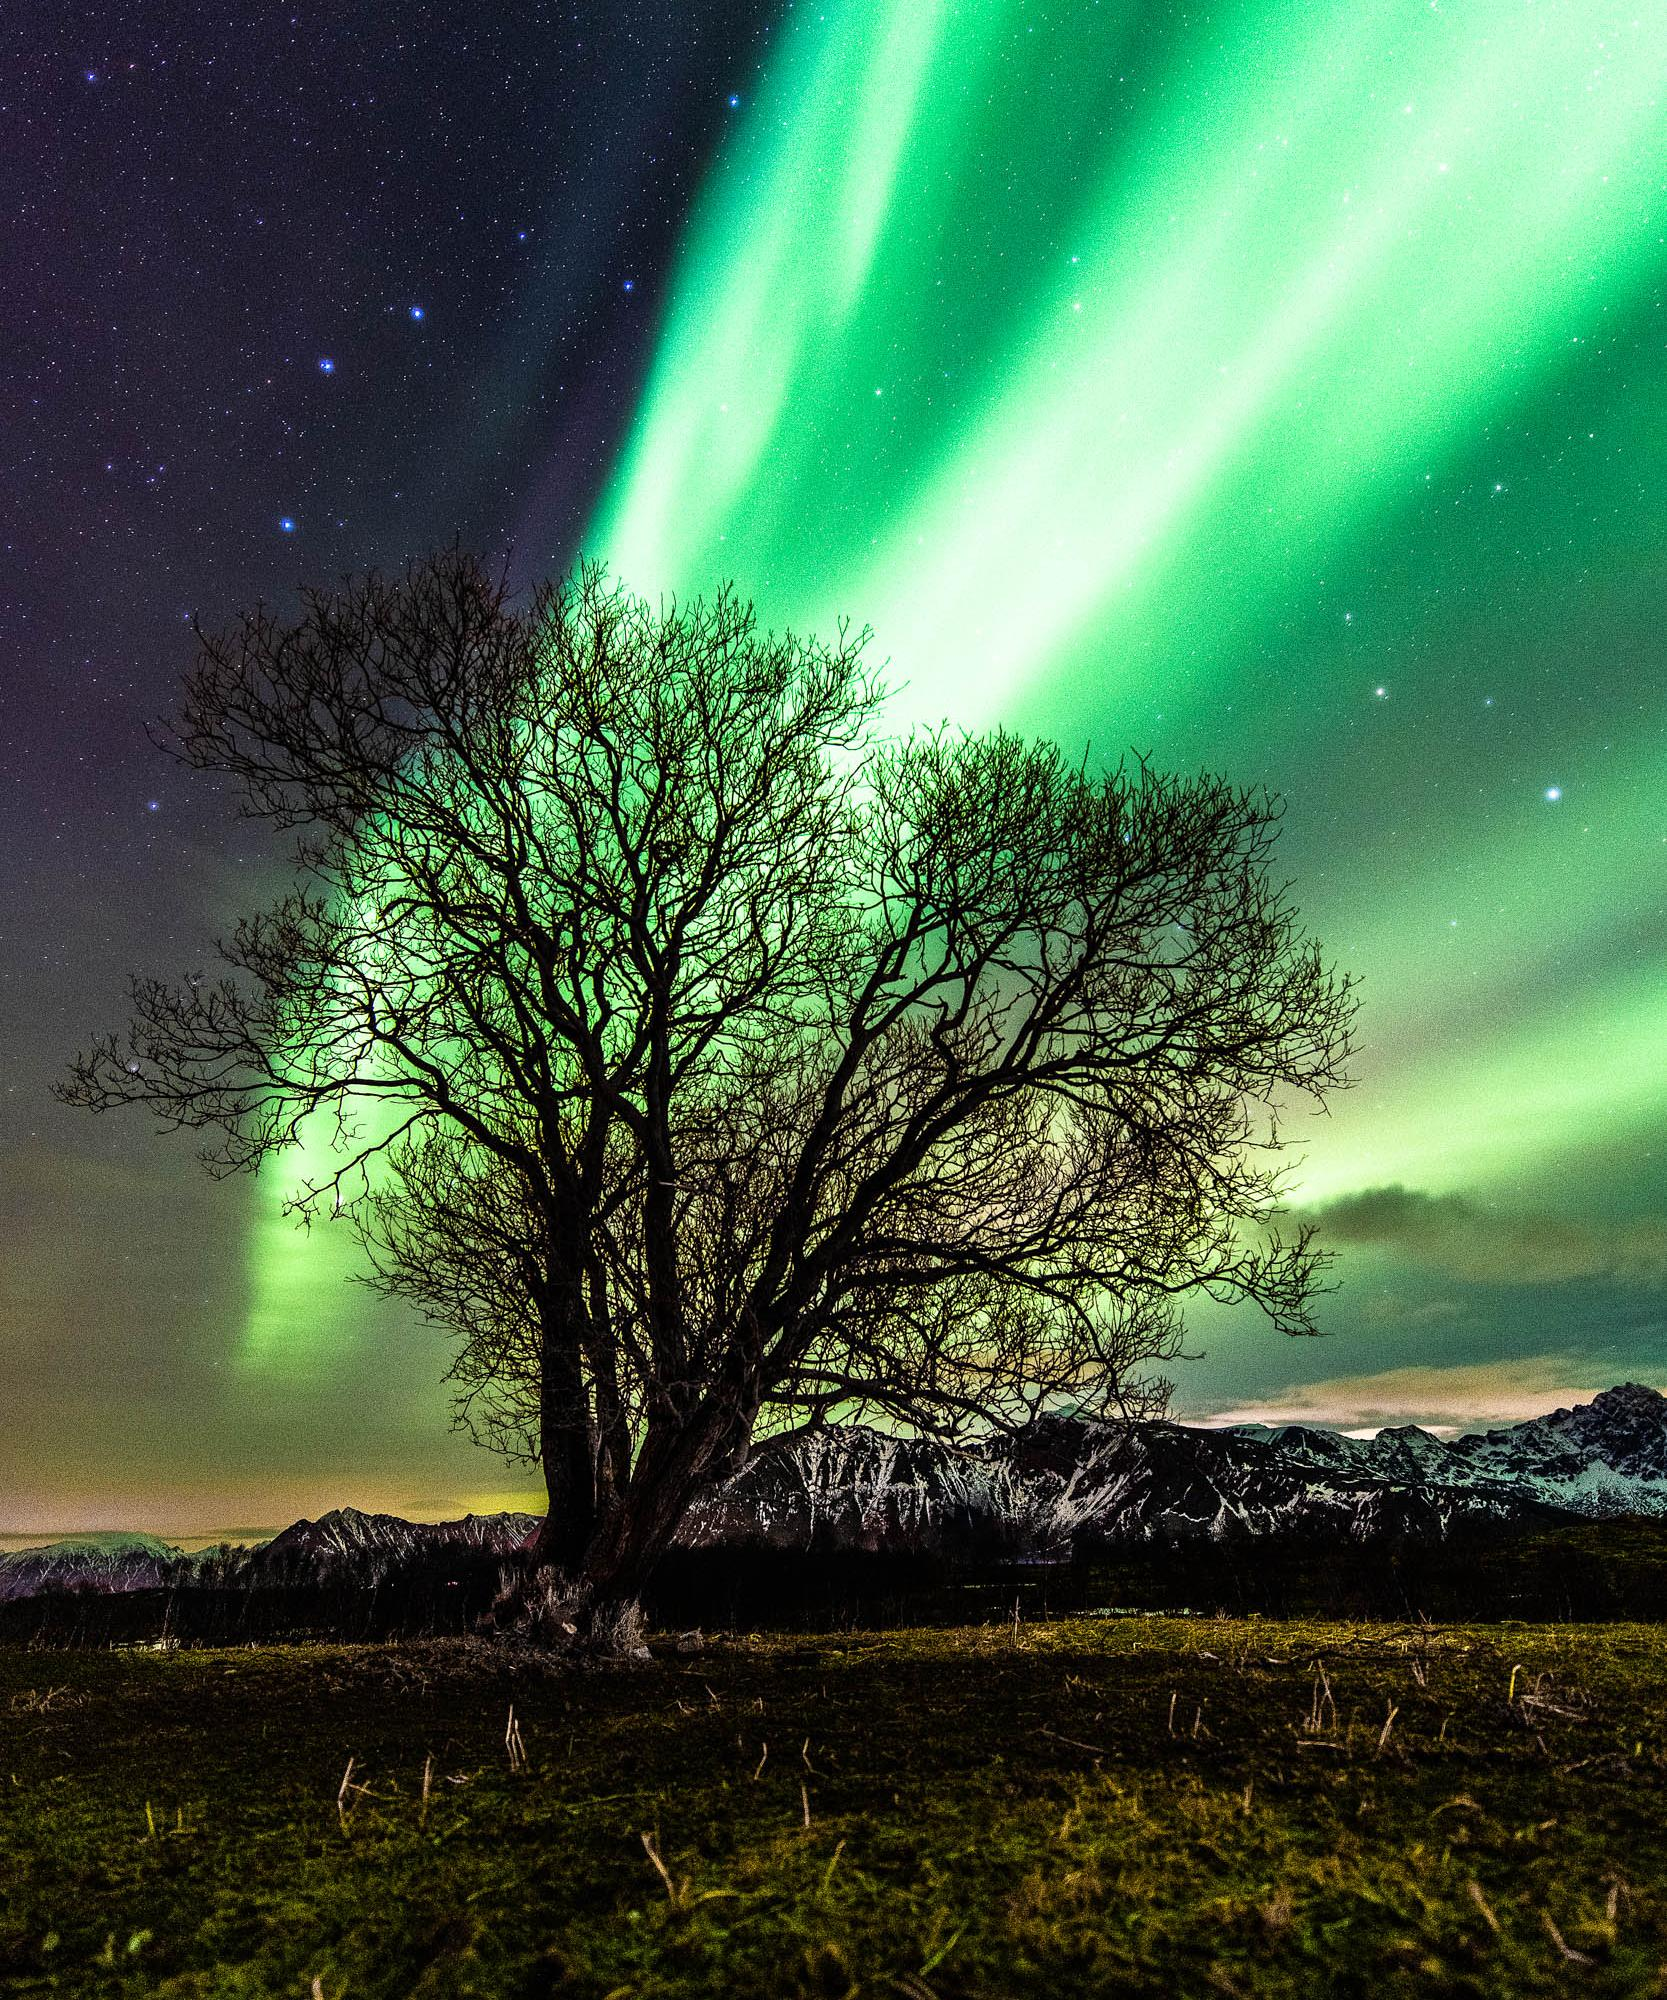 Northern Lights Dancing the skies in Norway